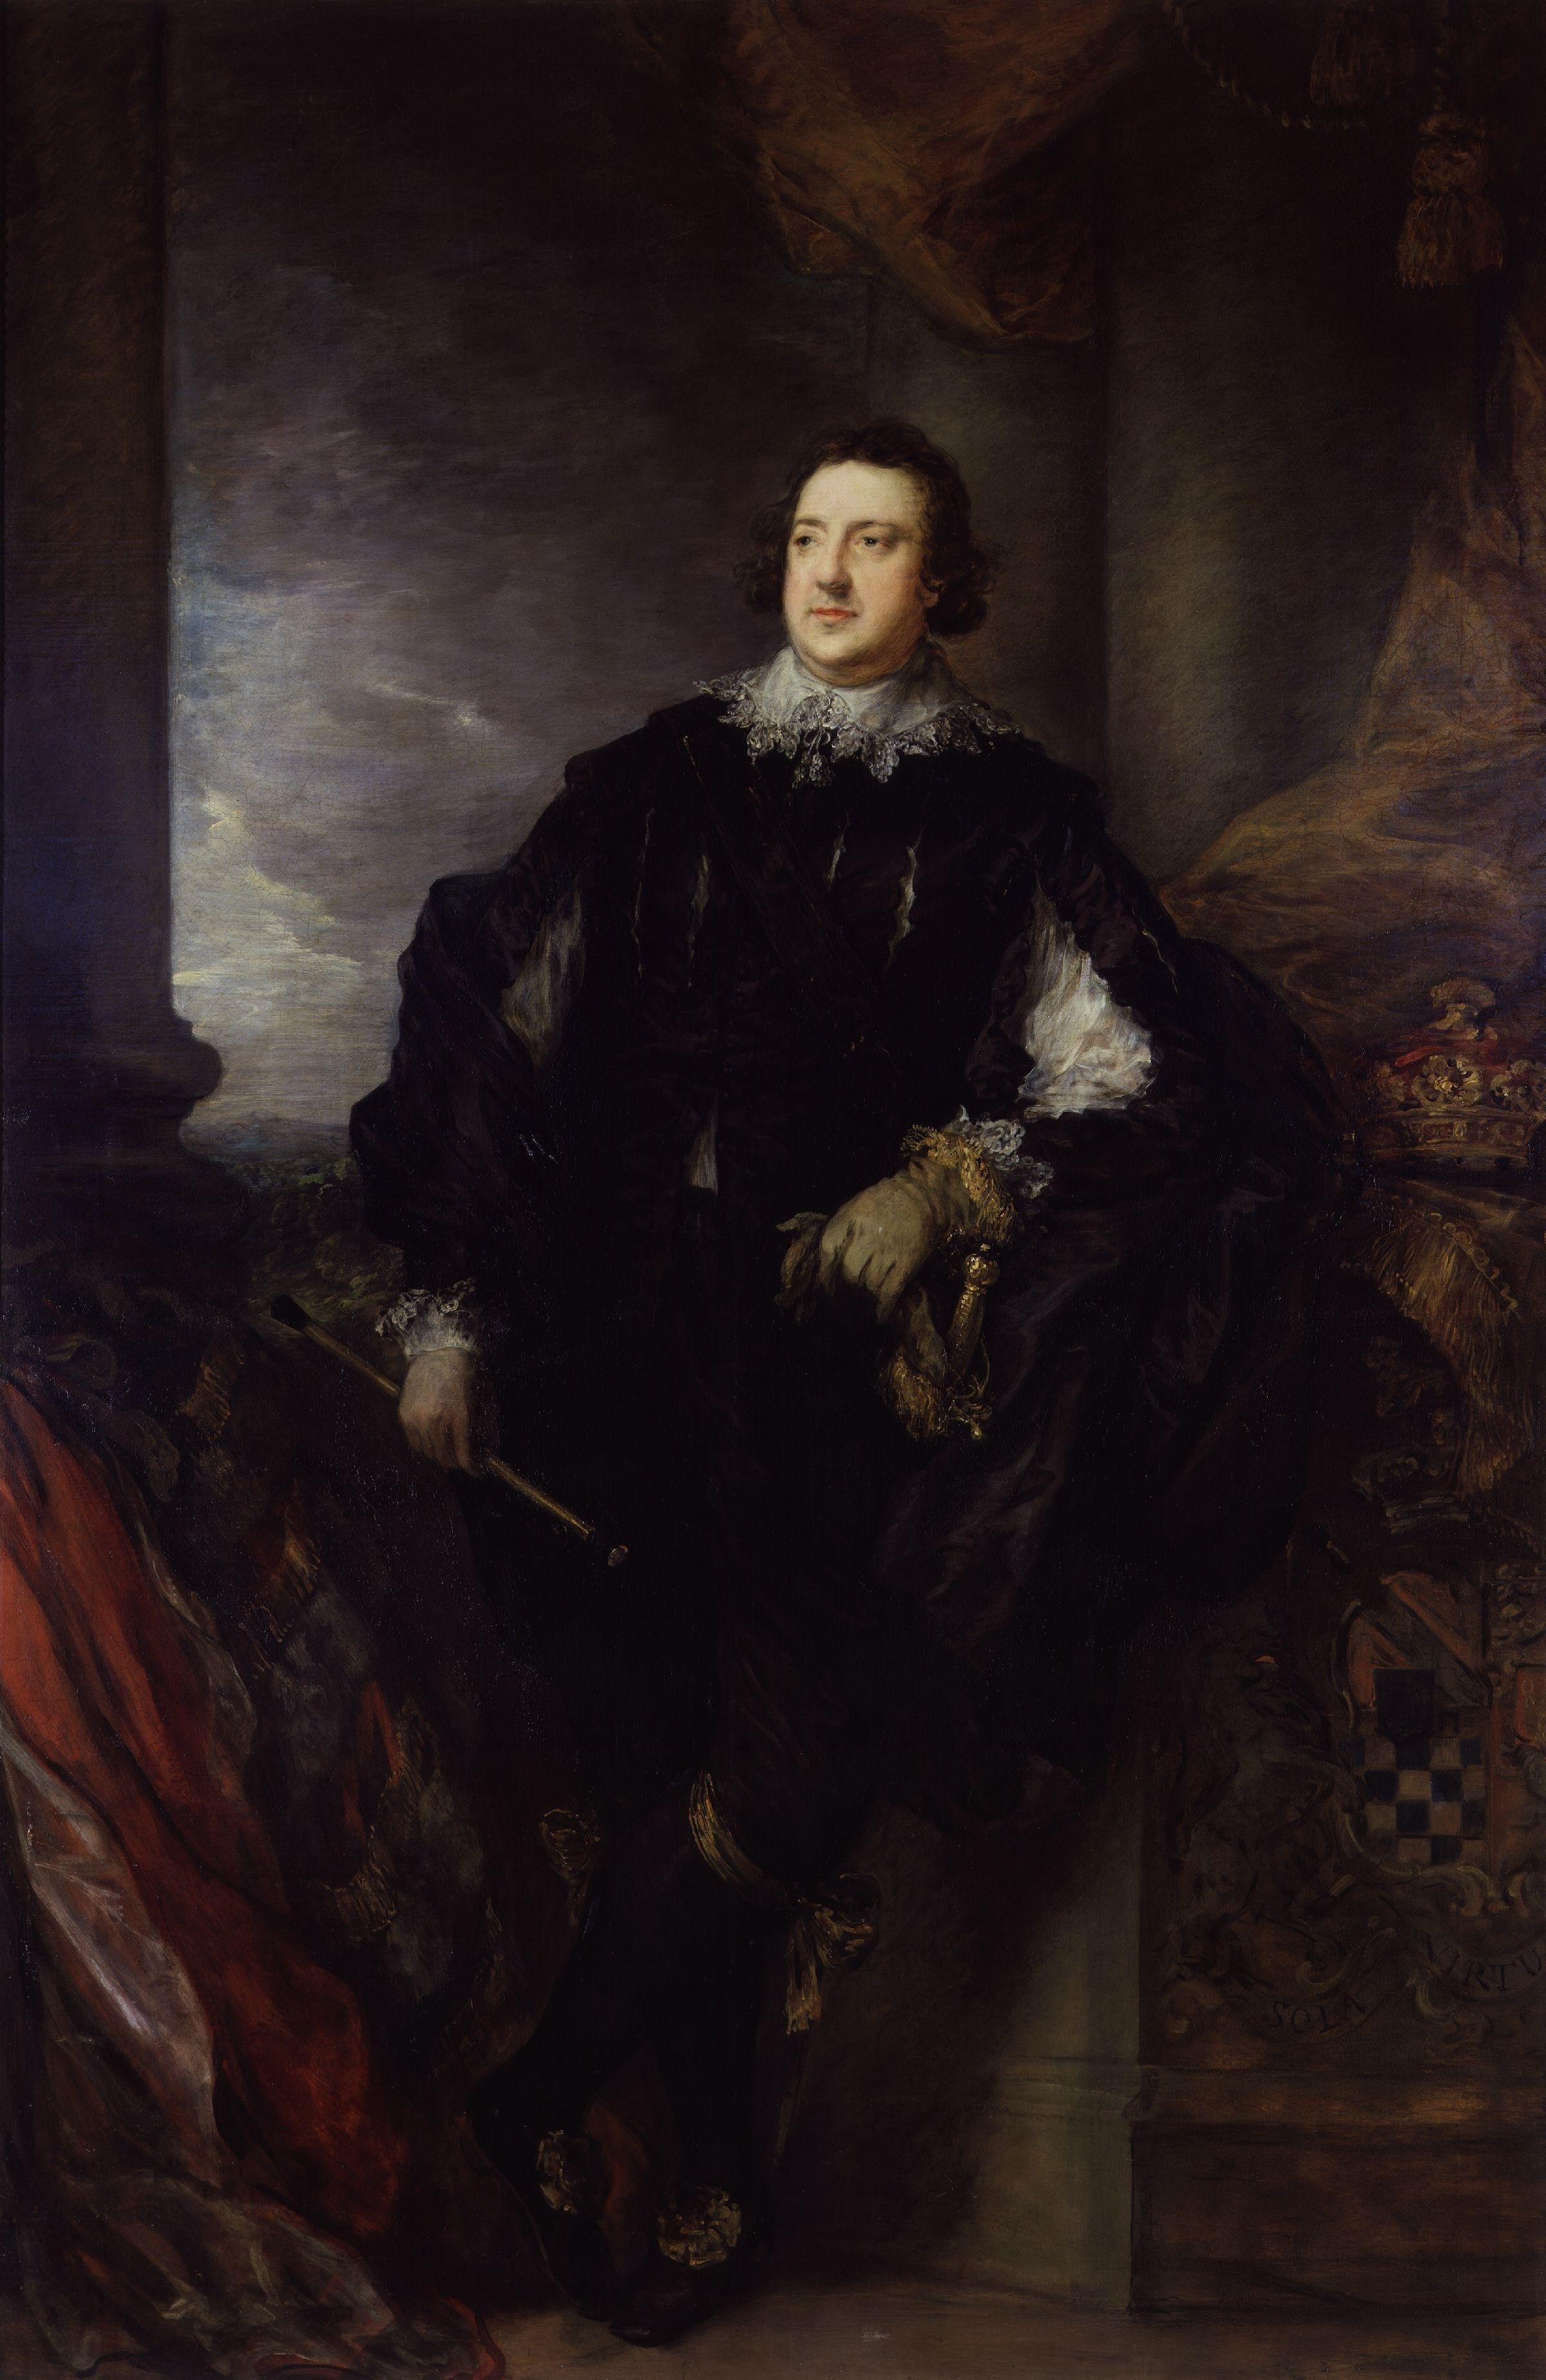 Charles Howard, the 11th Duke of Norfolk